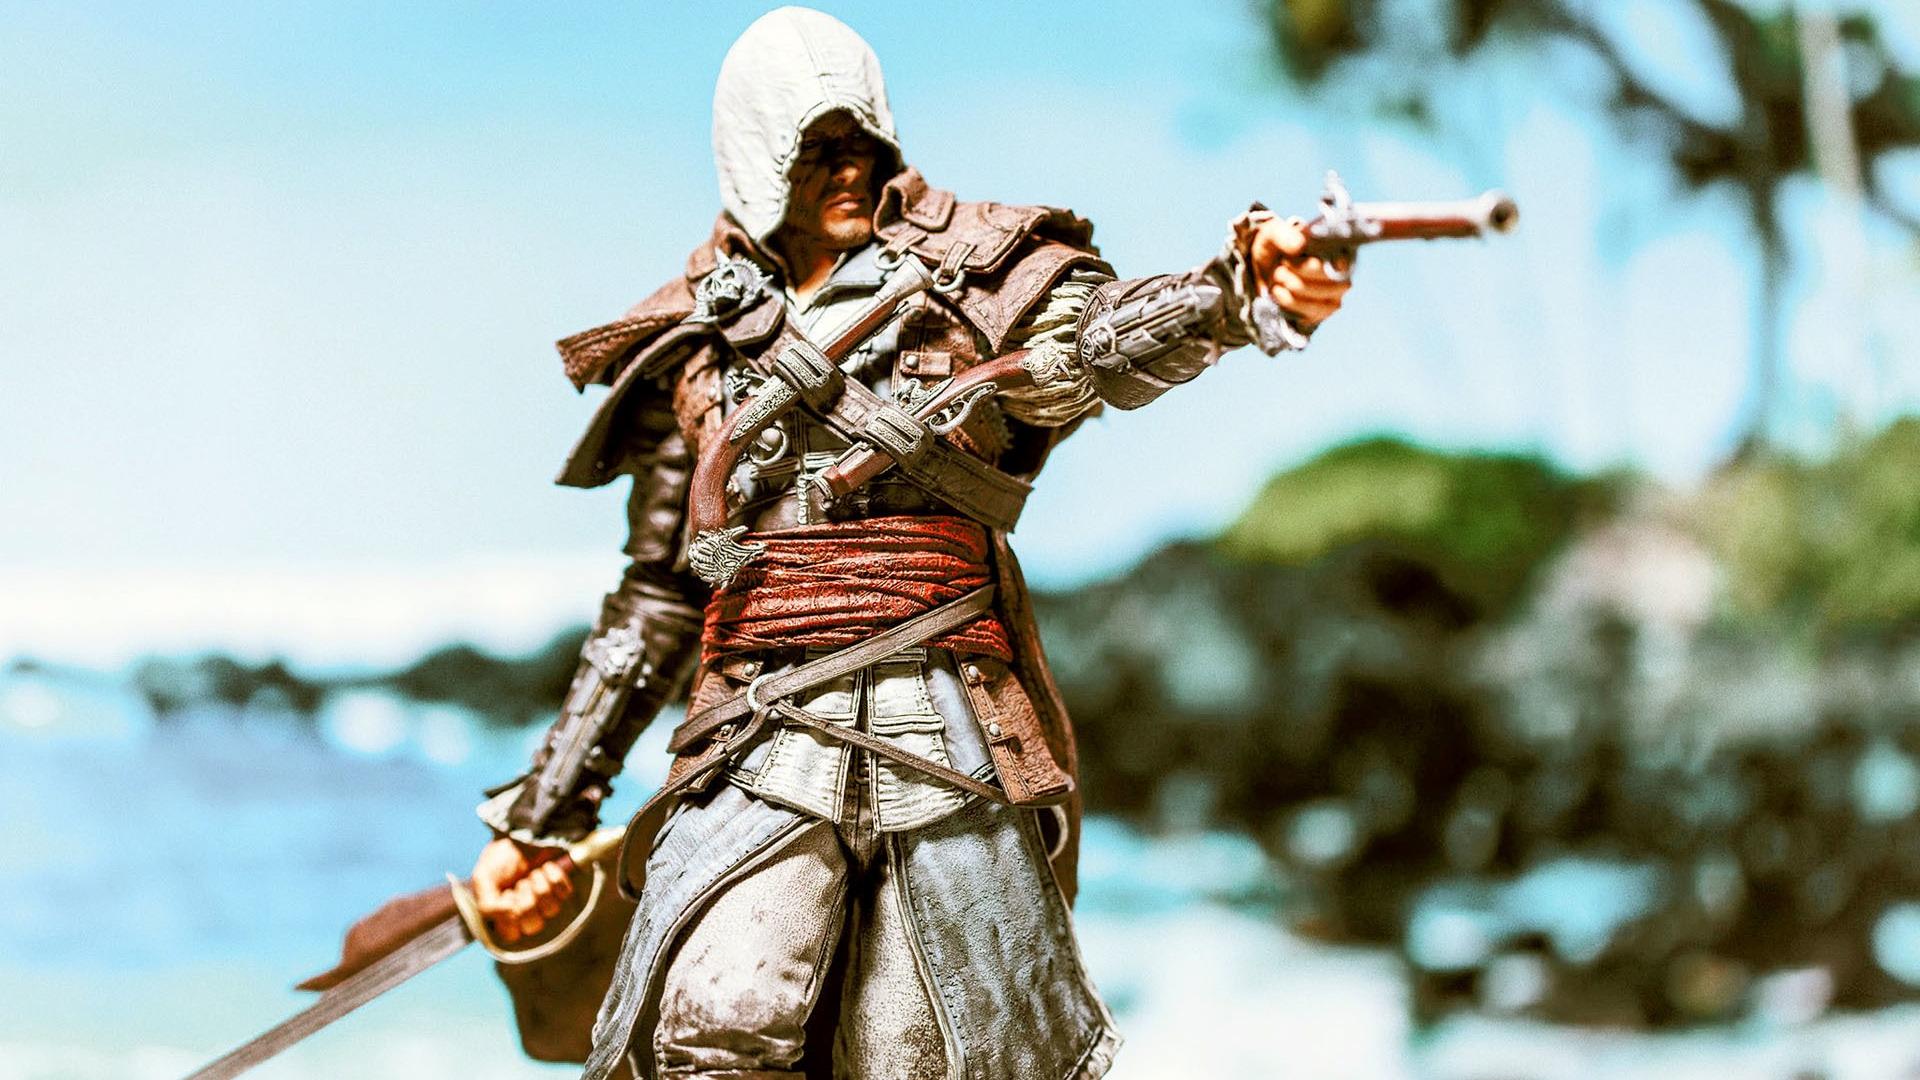 Assassin Creed Black Flag Character Hd Wallpaper Wallpaperfx